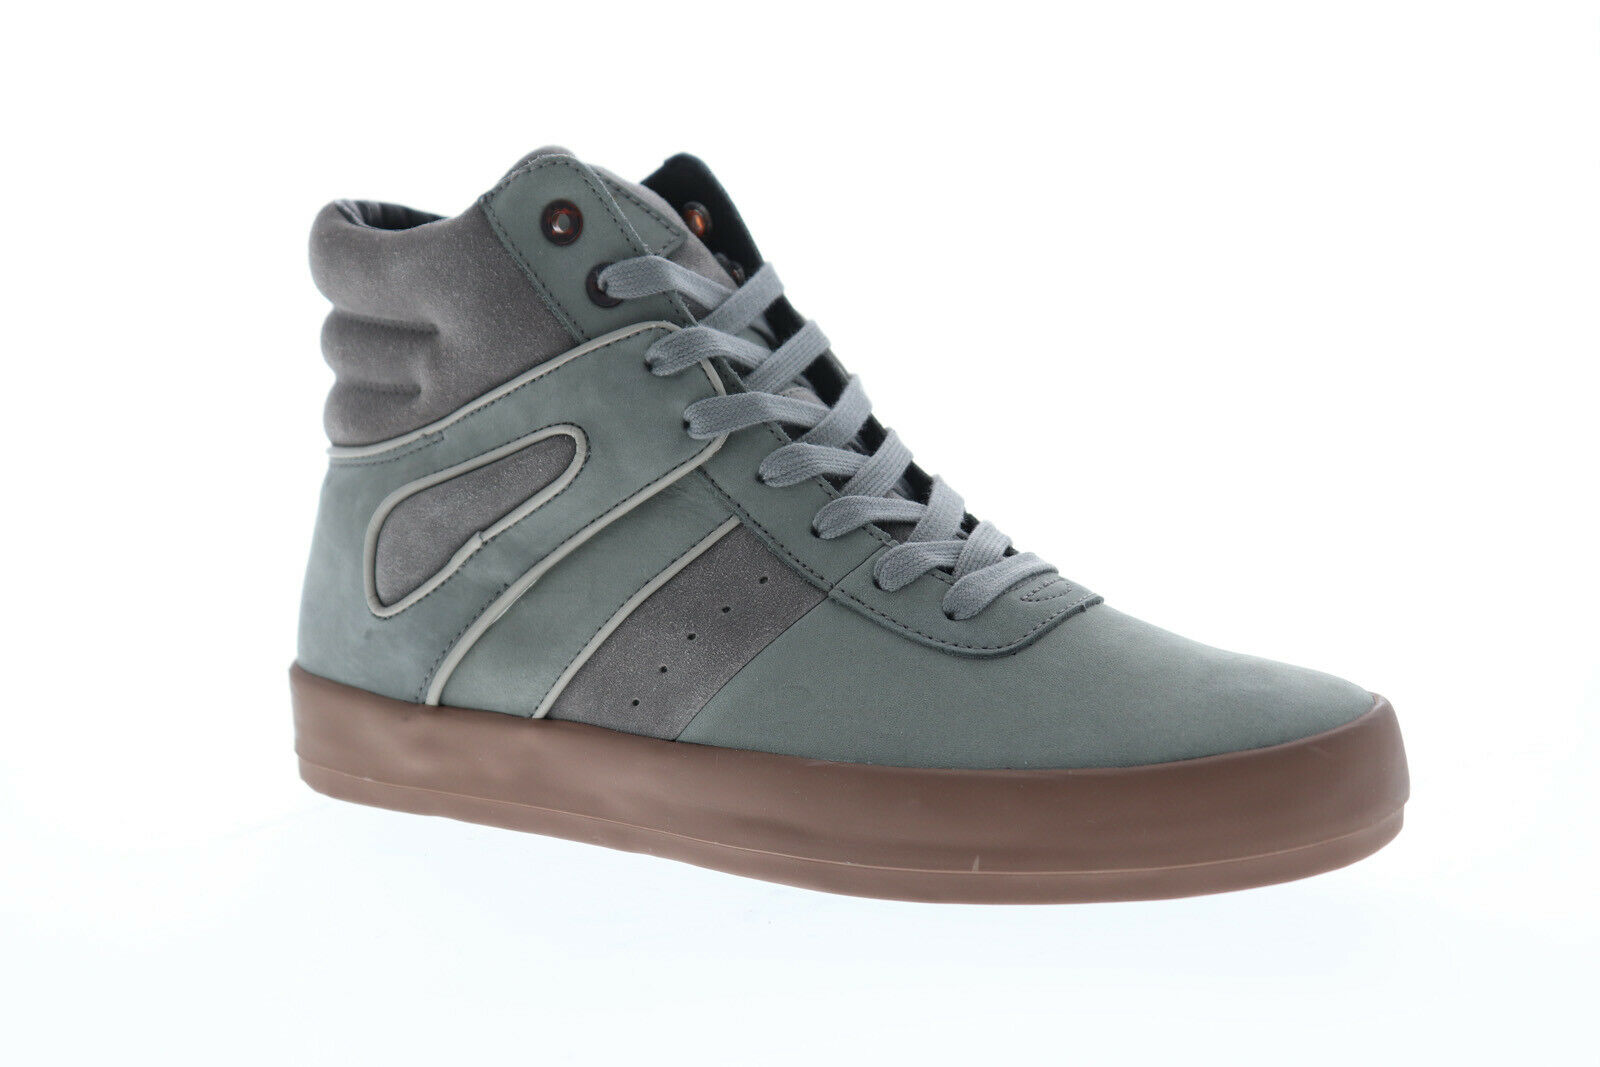 Creative Recreation Moretti CR3250001 Mens Gray Casual High Top Sneakers Shoes